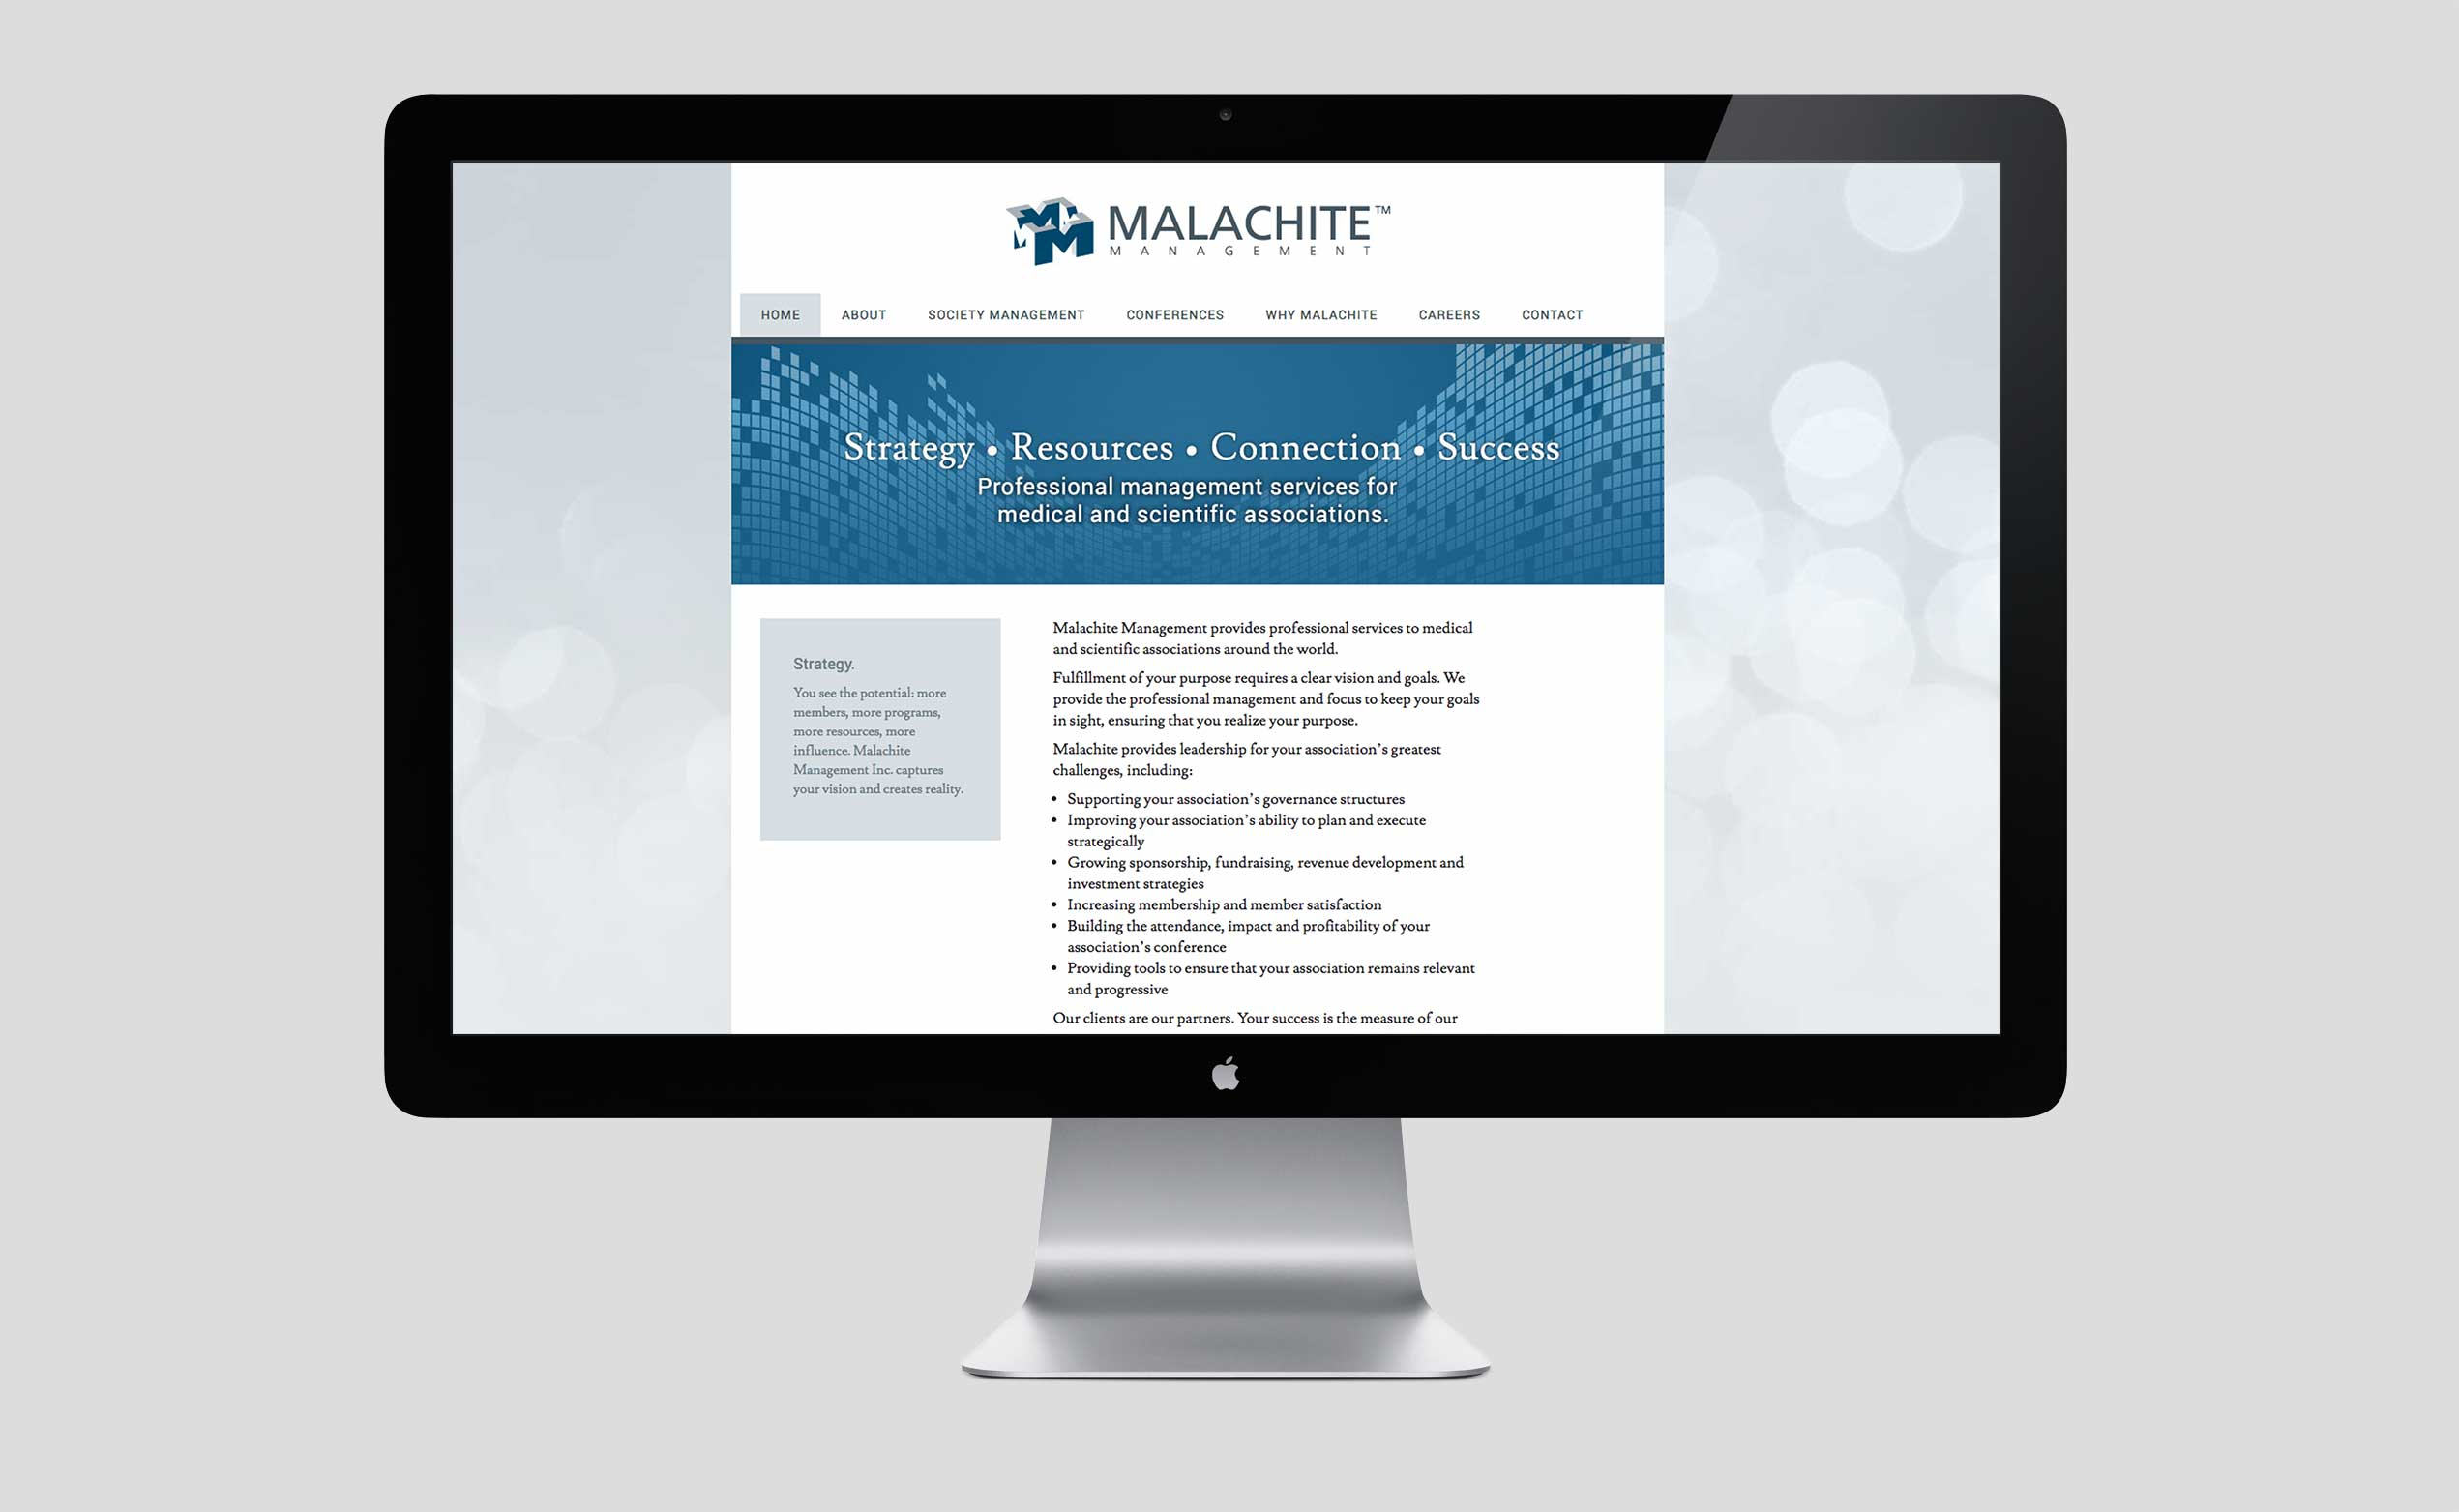 Malachite Management website before redesign